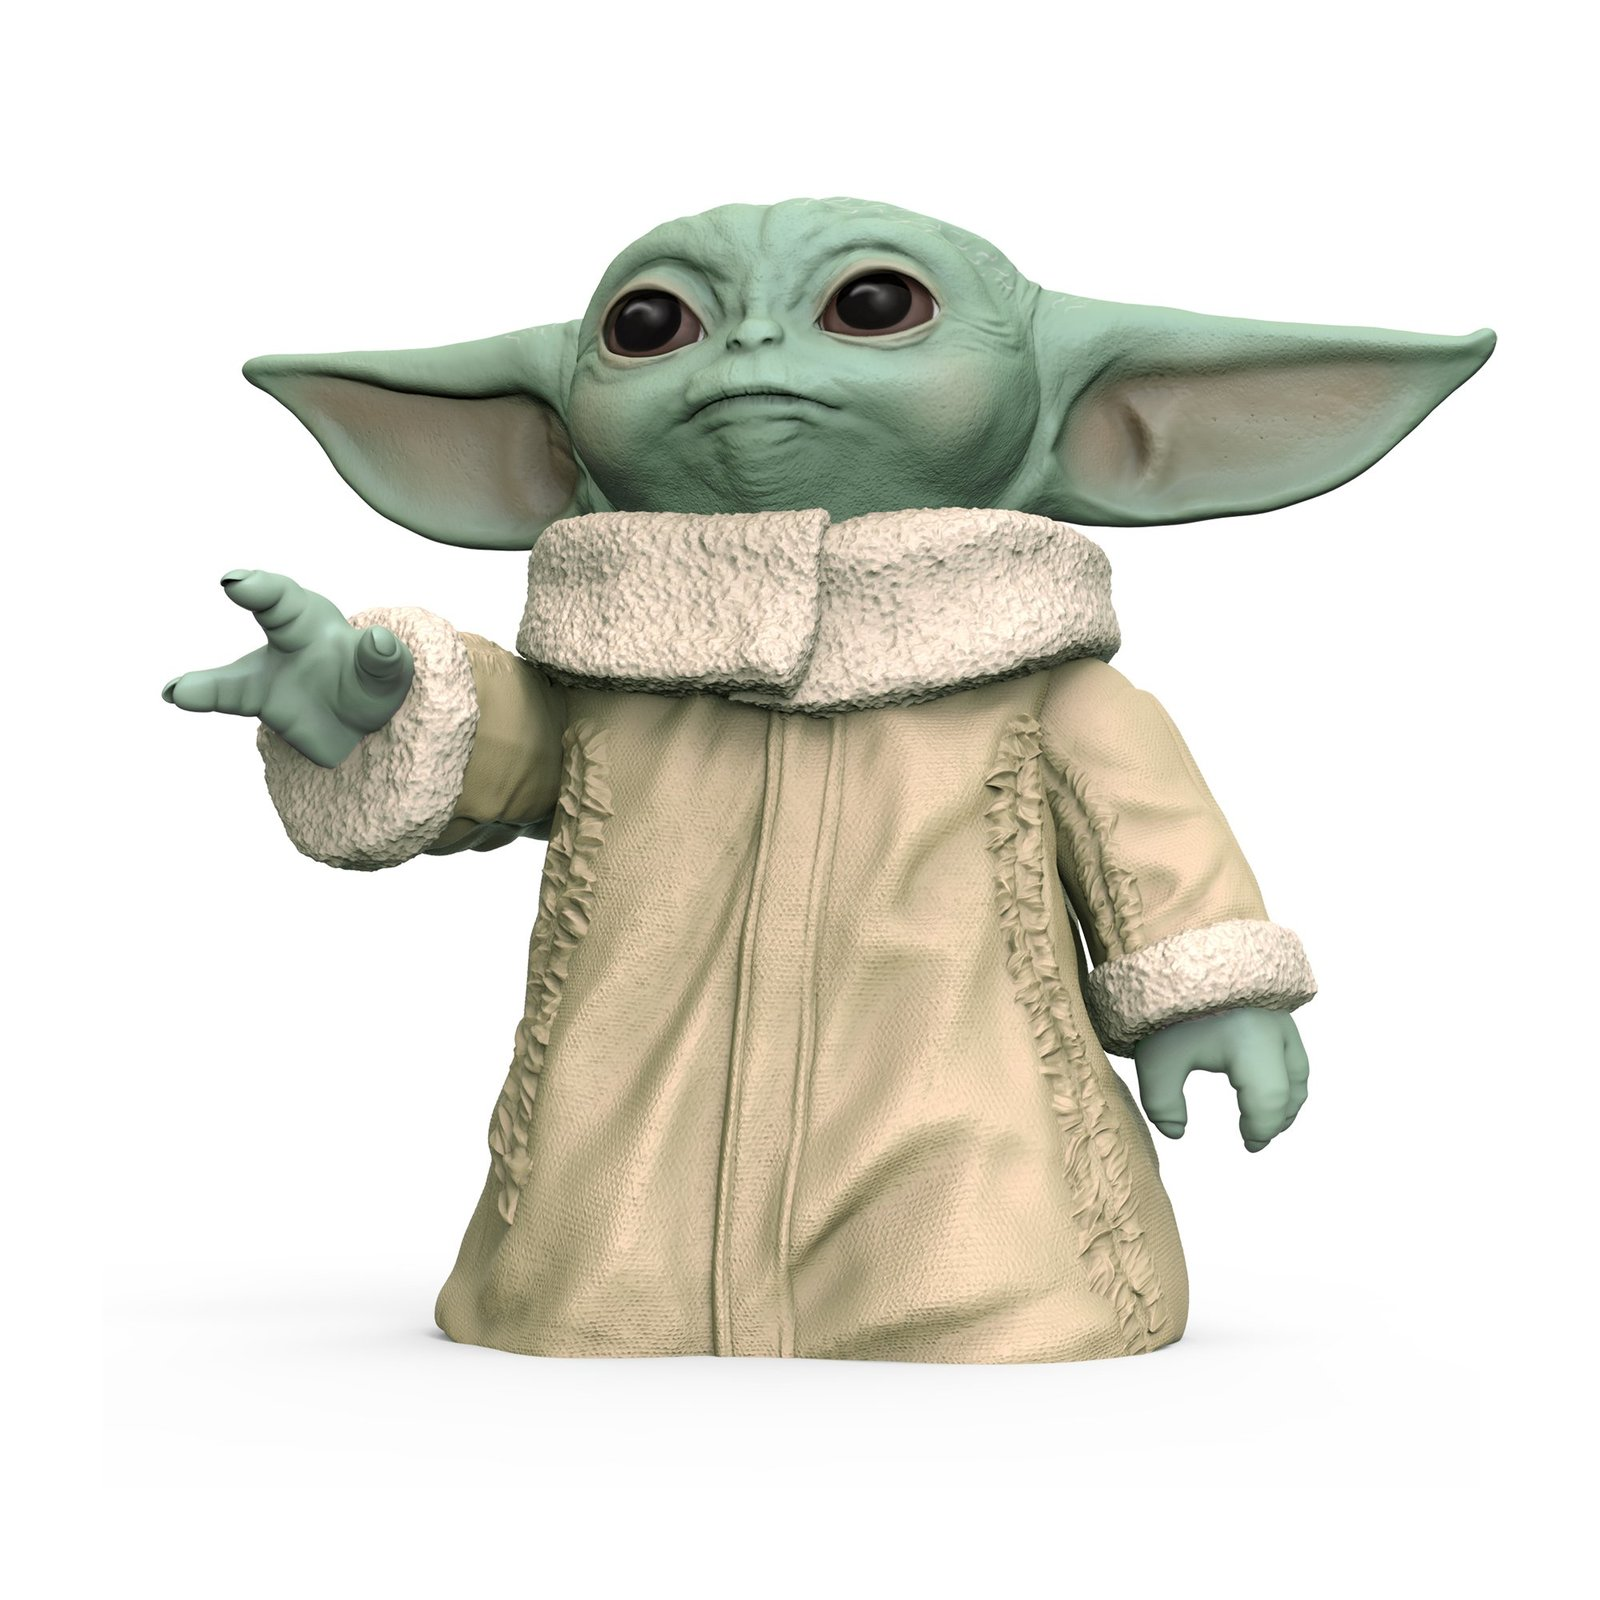 Star Wars: The Child Action figure image